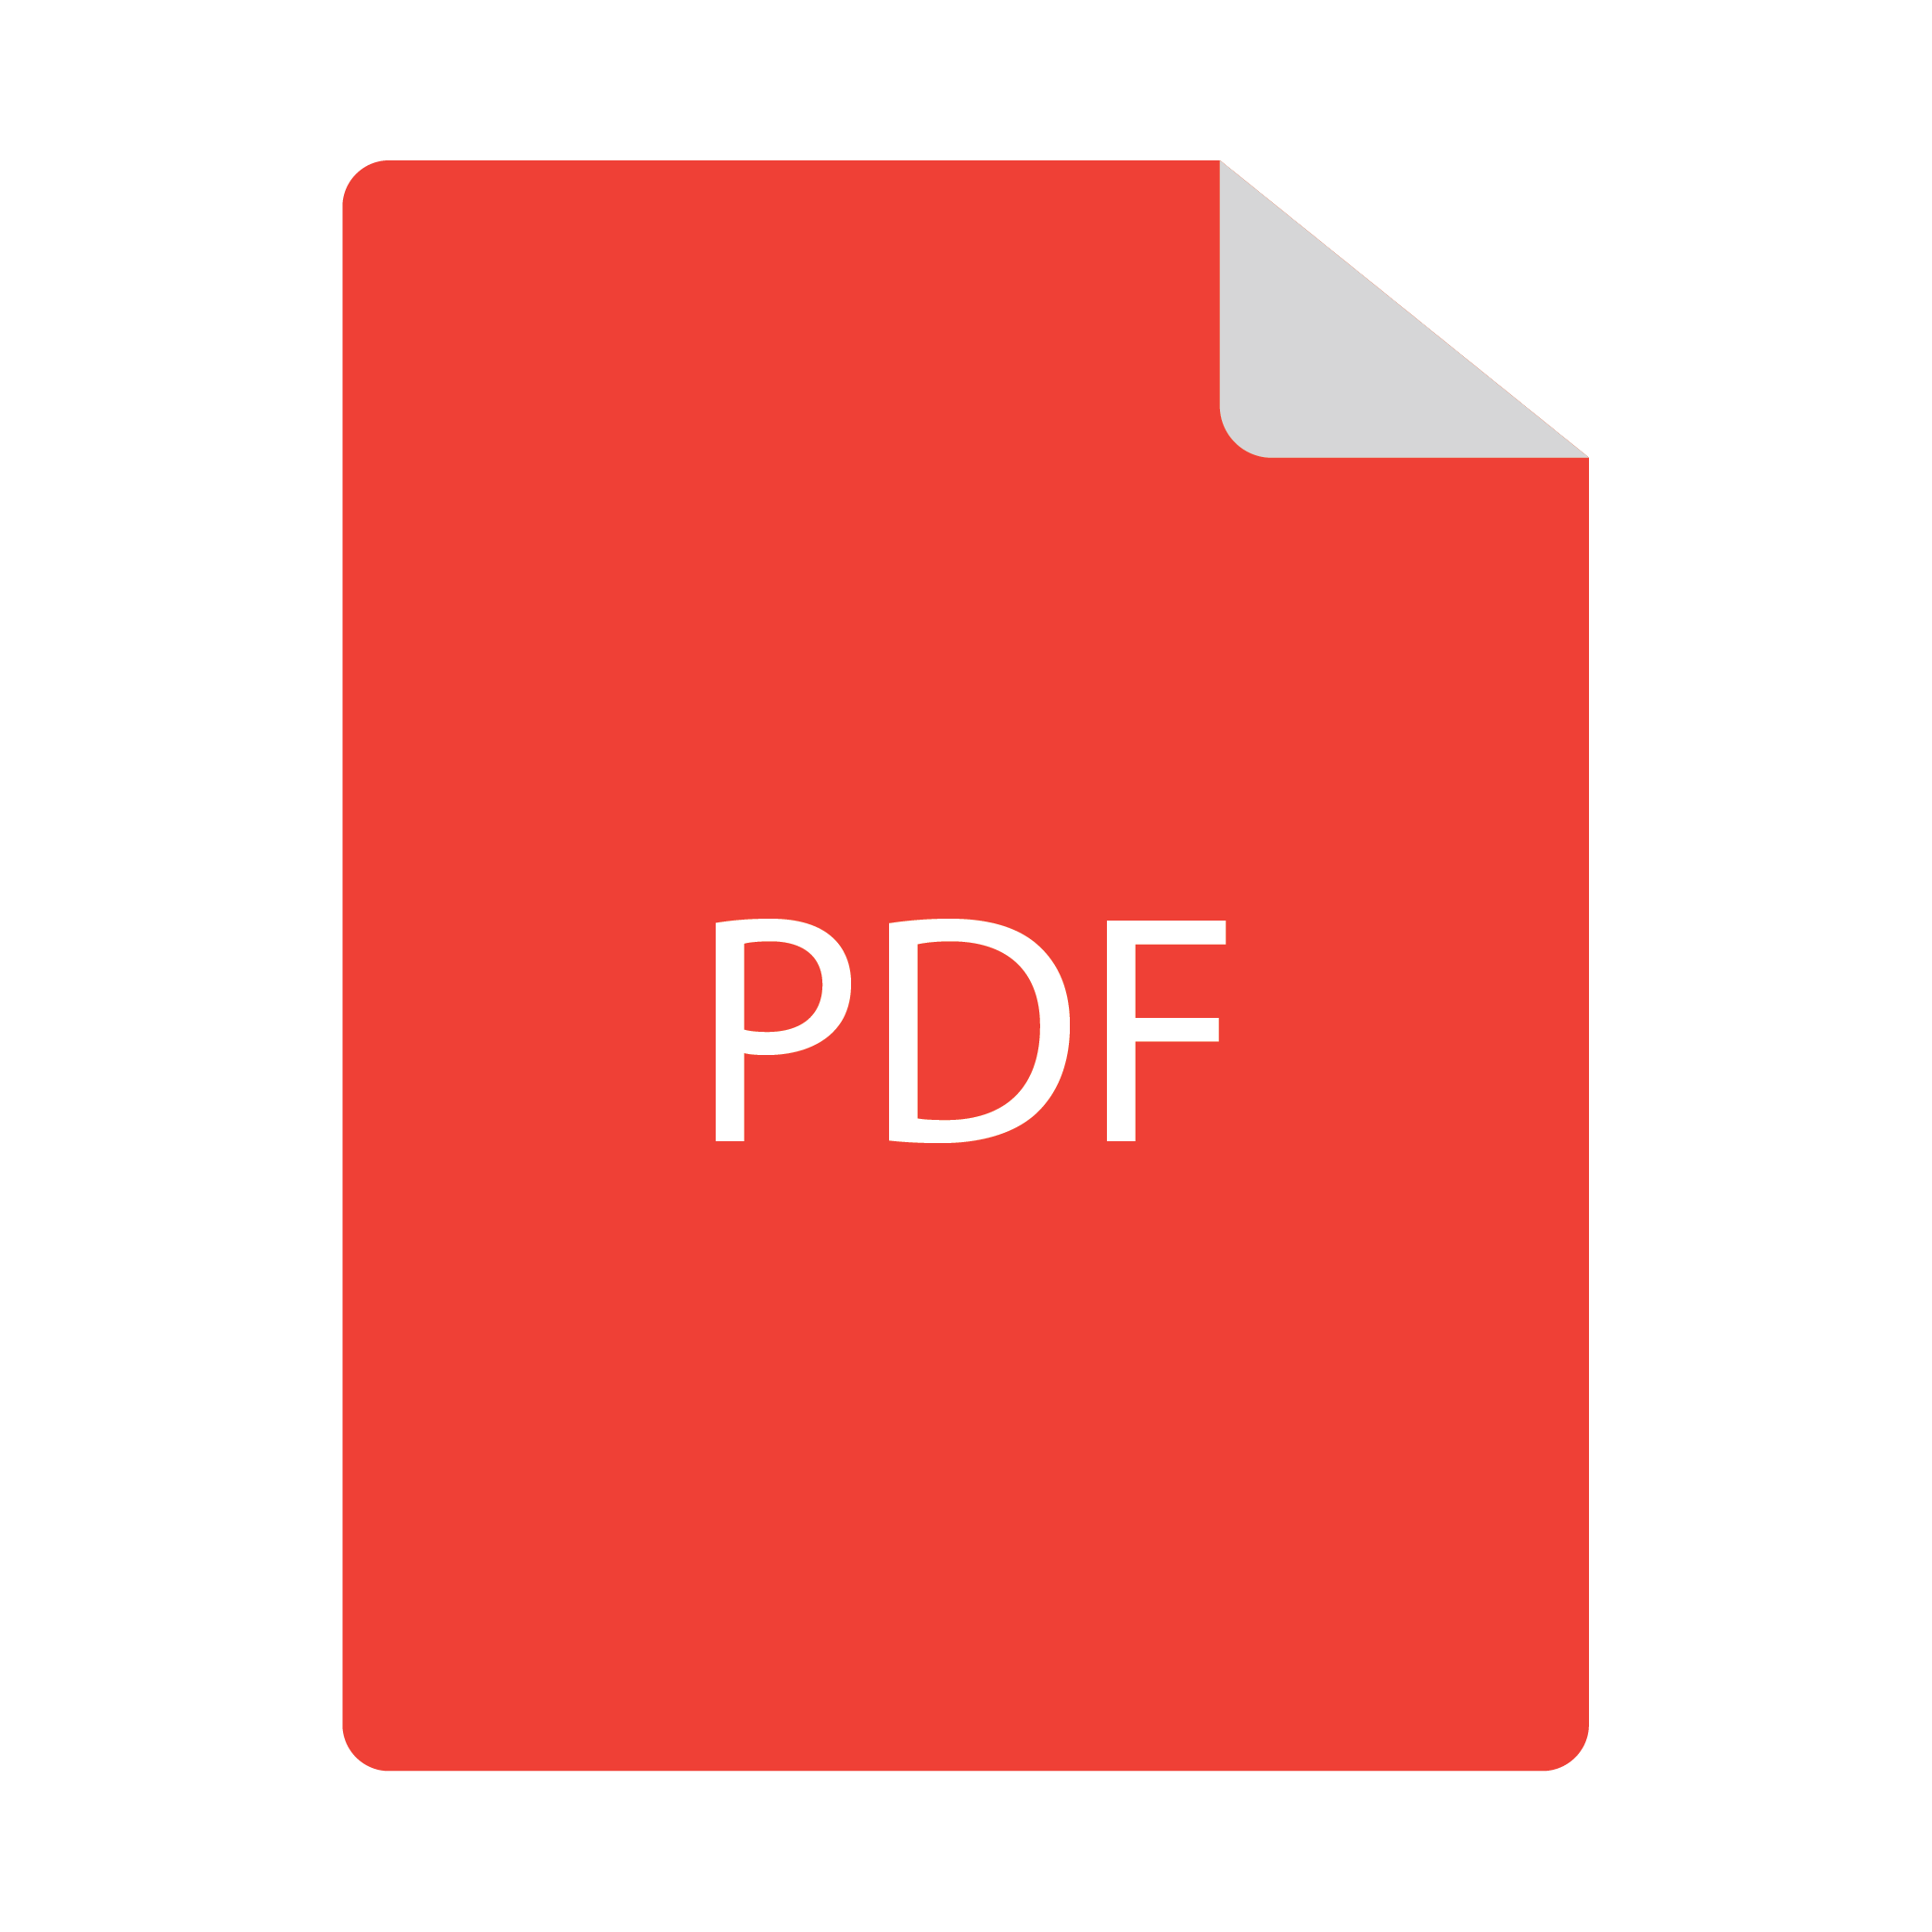 Come convertire i file TXT in pdf